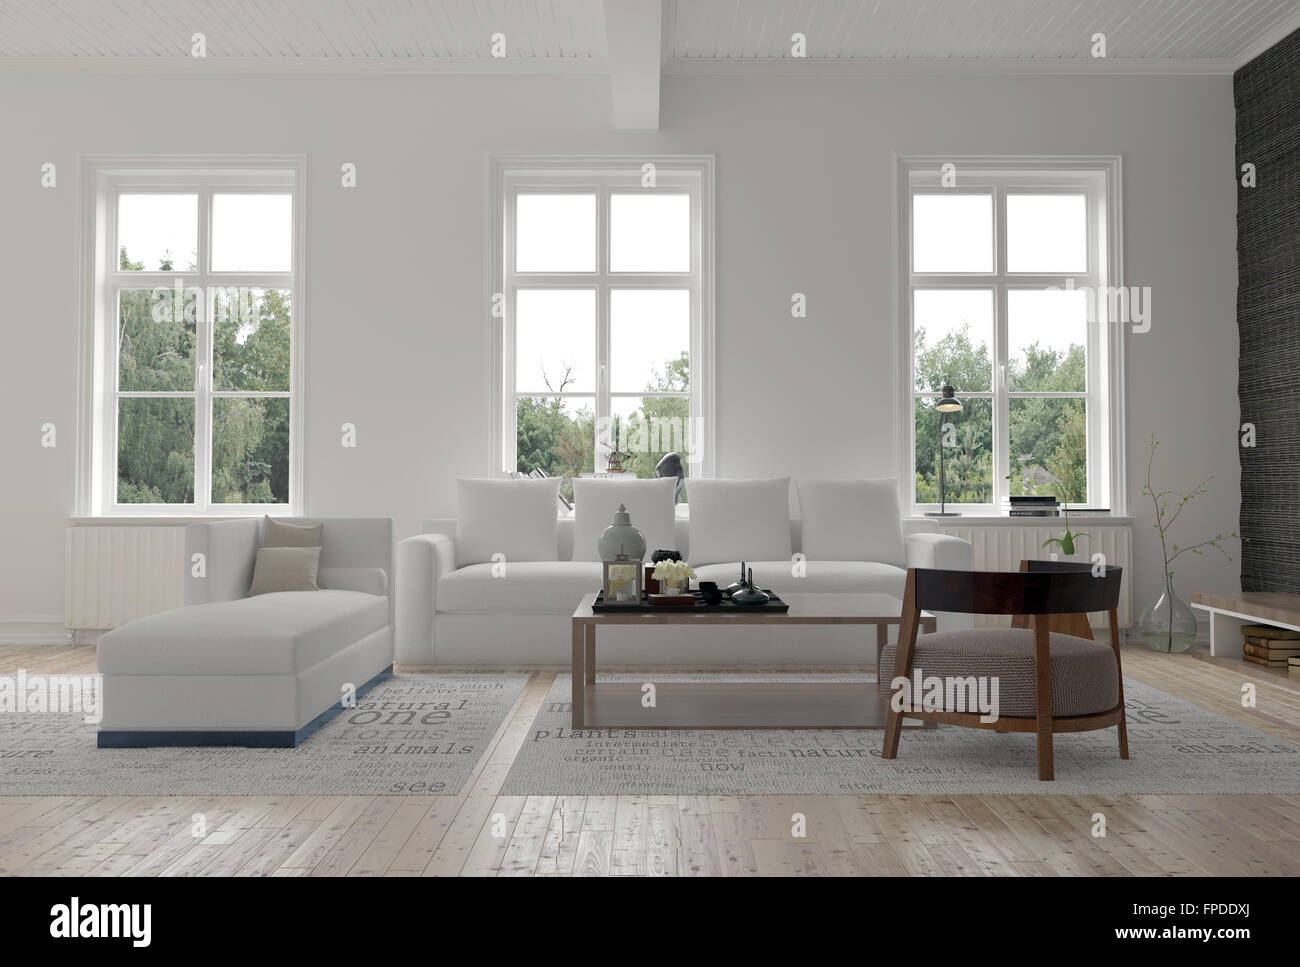 Light Bright Modern Living Room Interior With Three Large Windows Stock Photo Alamy